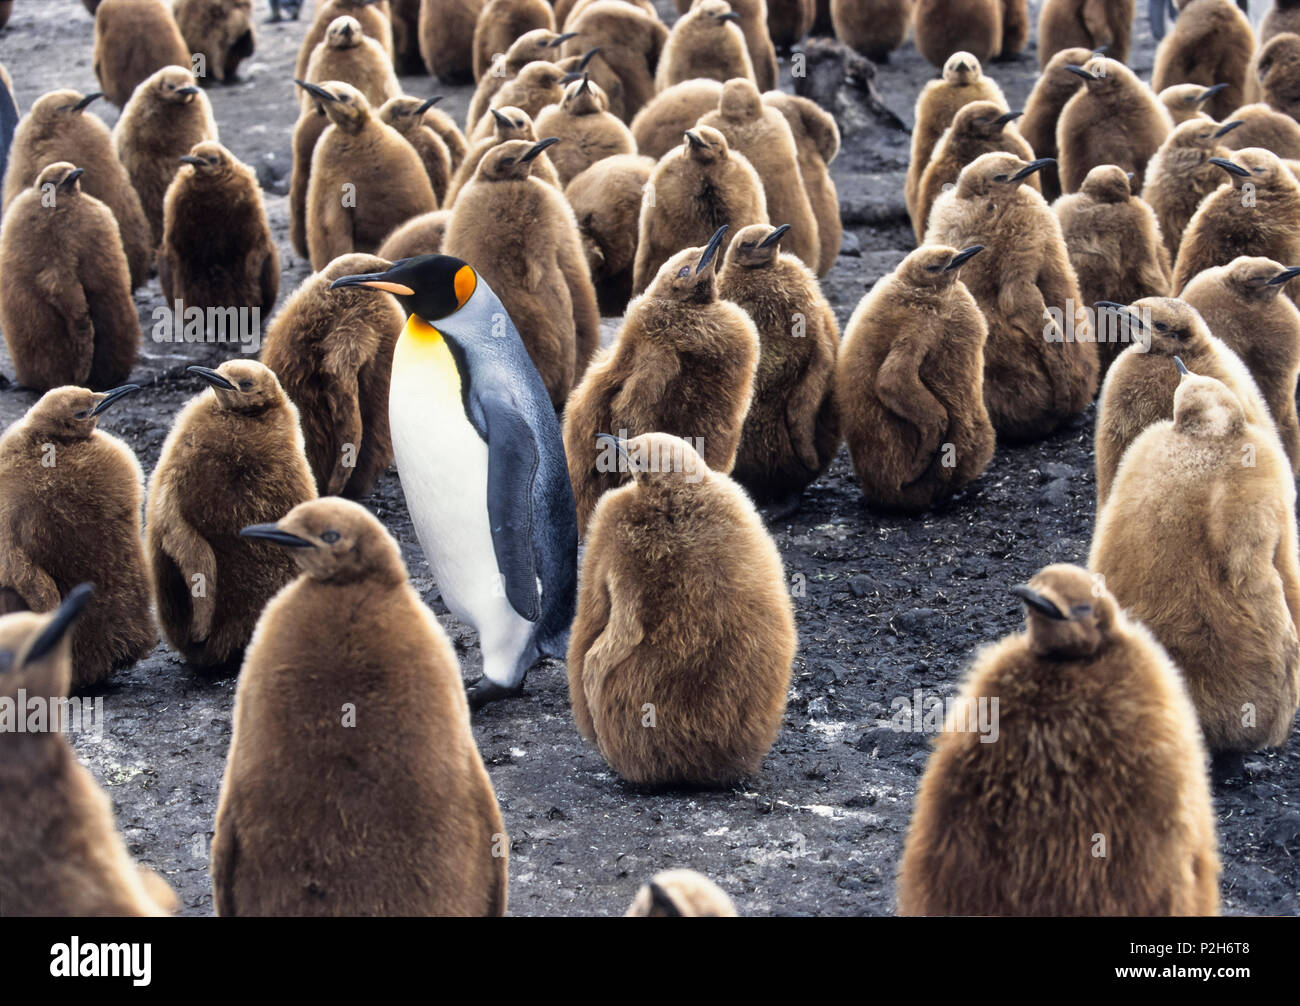 King Penguin with chicks, Aptenodytes patagonicus, South Georgia, Antarctica - Stock Image